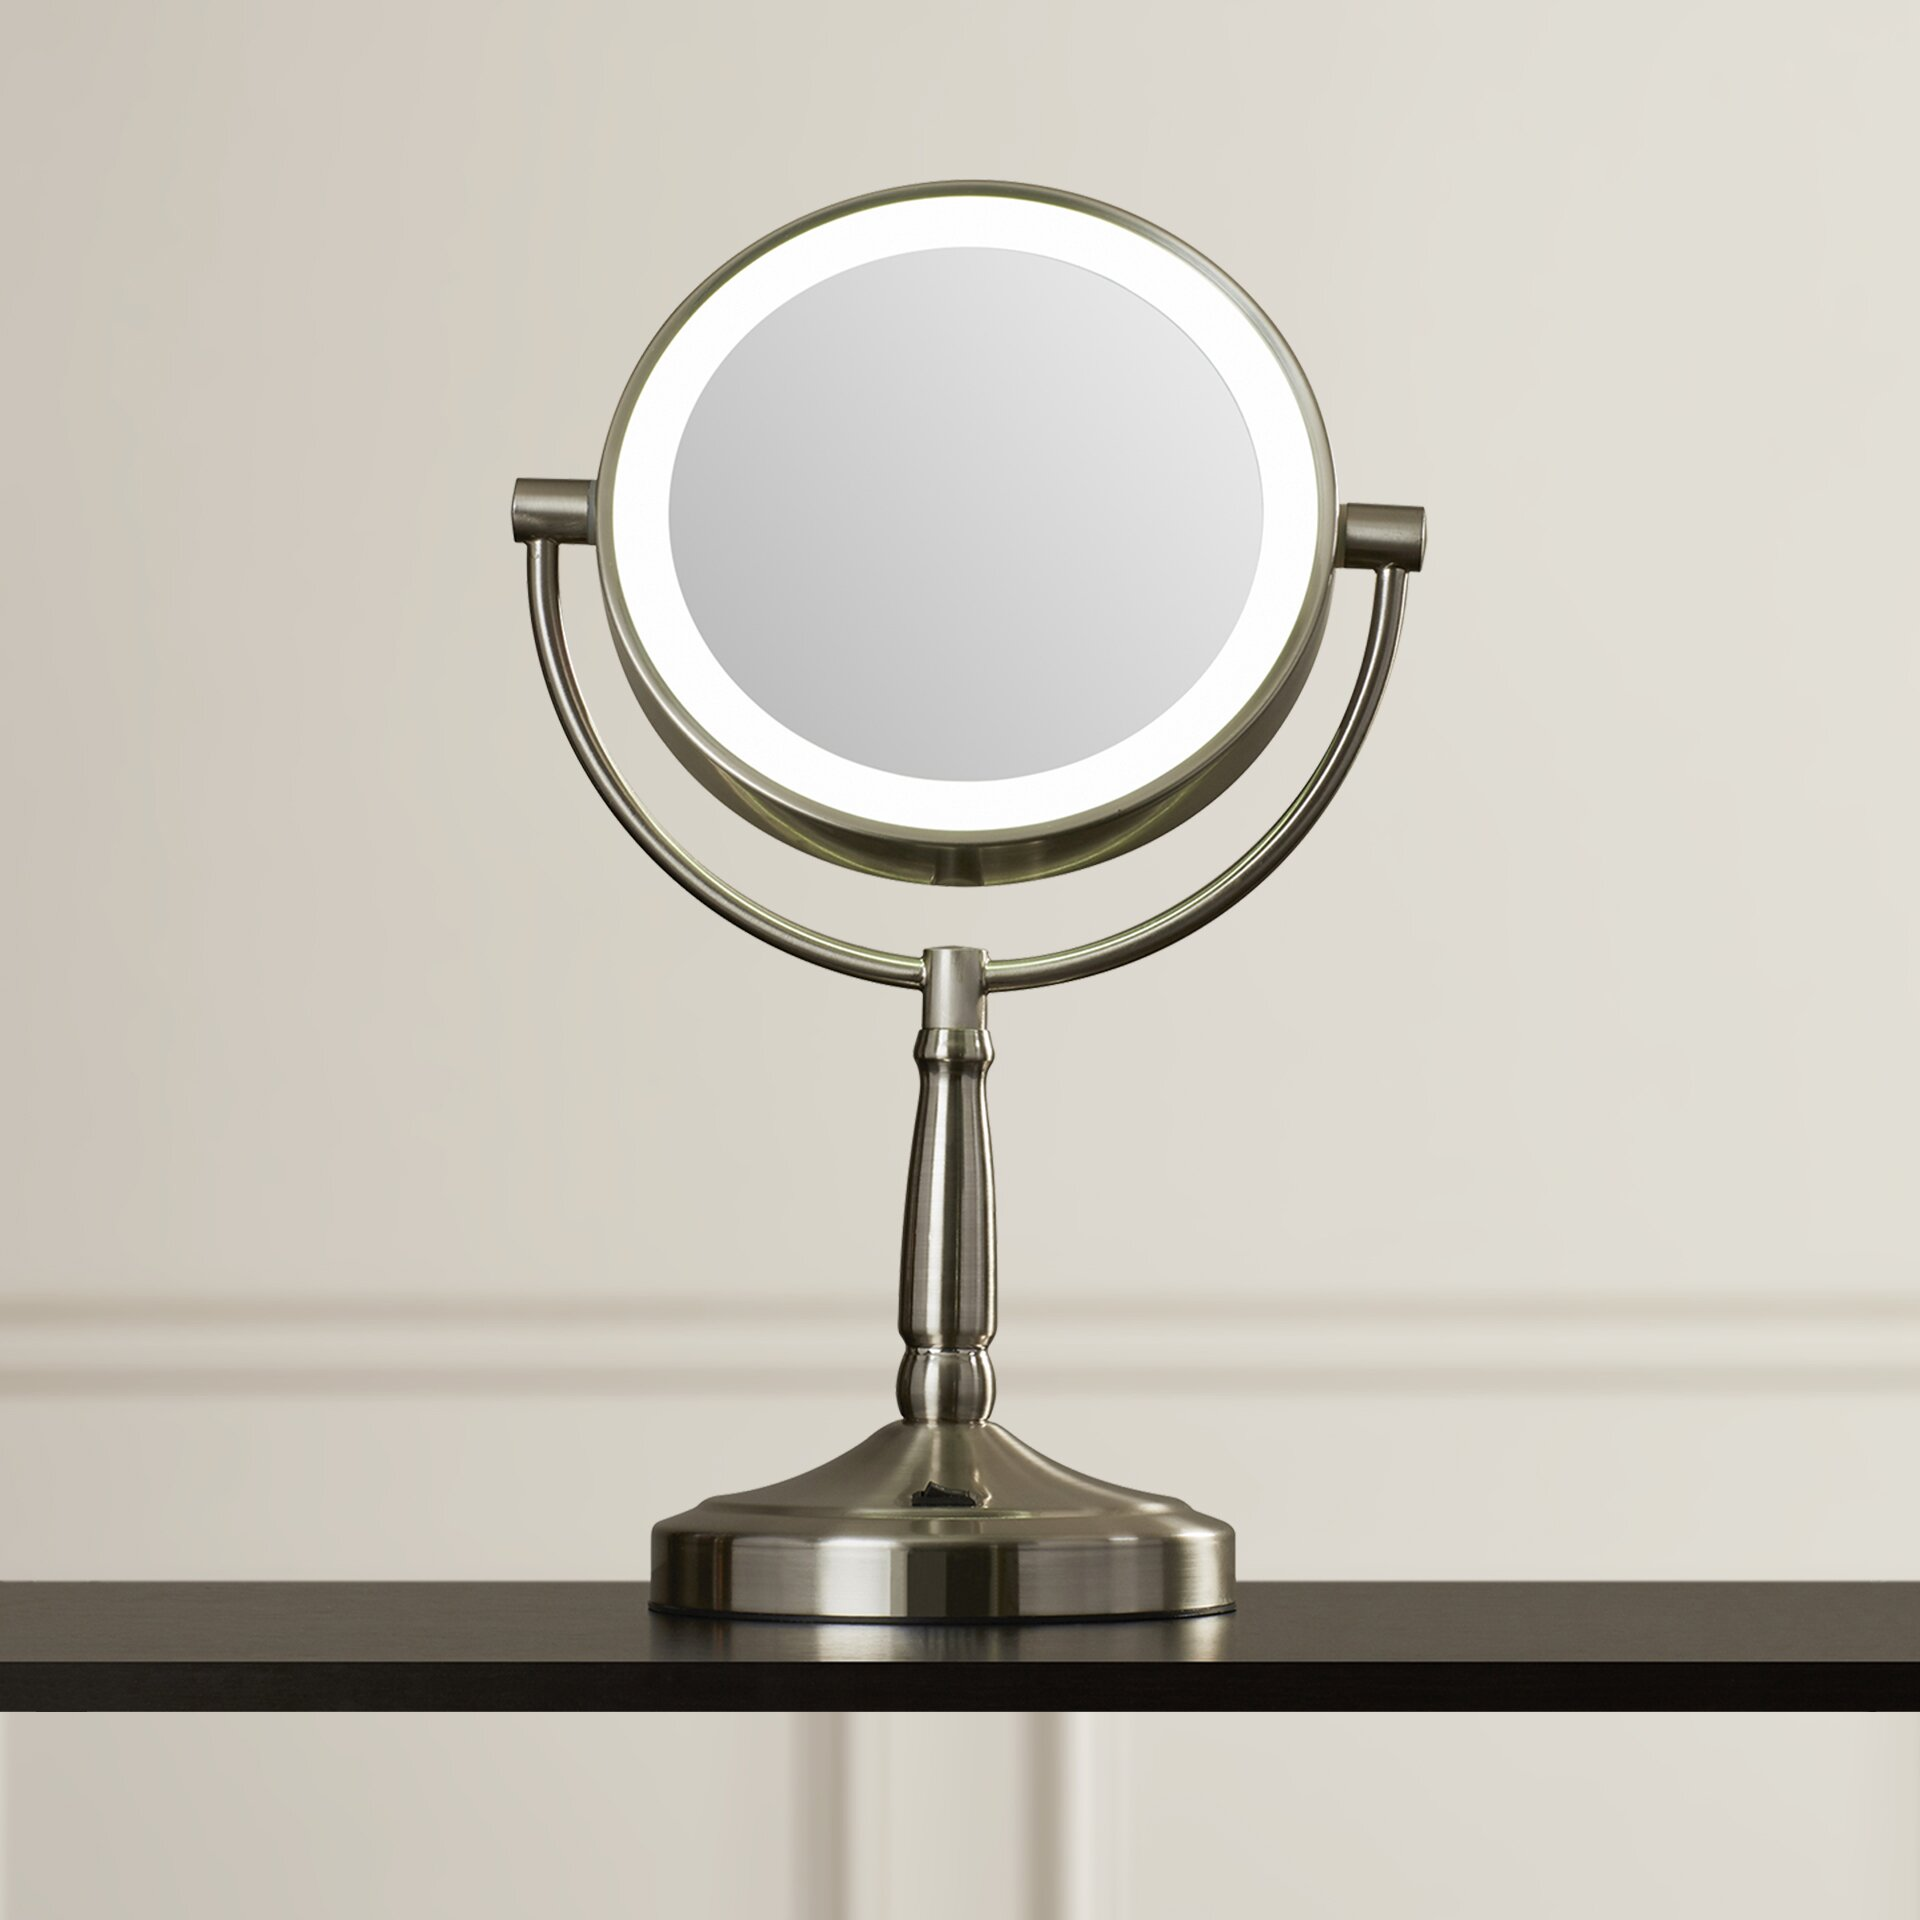 cordless dual sided led lighted vanity mirror mirrors with lights you  ll love wayfair conair conair   replacement bulb. Jilbere lighted makeup mirror replacement bulbs   Makeup Daily